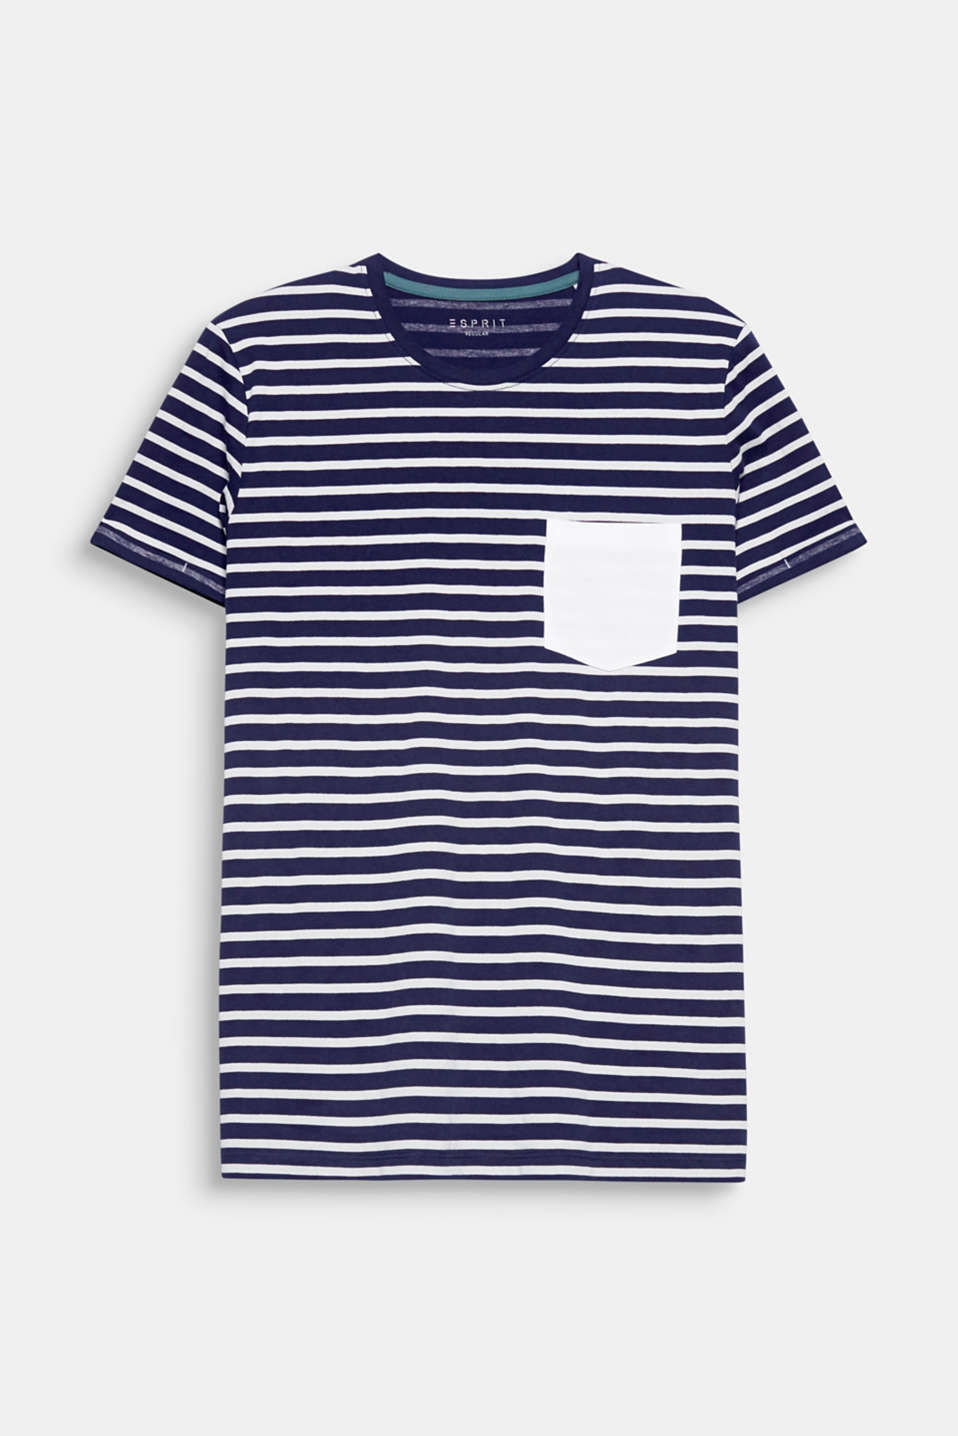 A fashion essential begging for wardrobe space: 100% cotton T-shirt with nautical stripes.